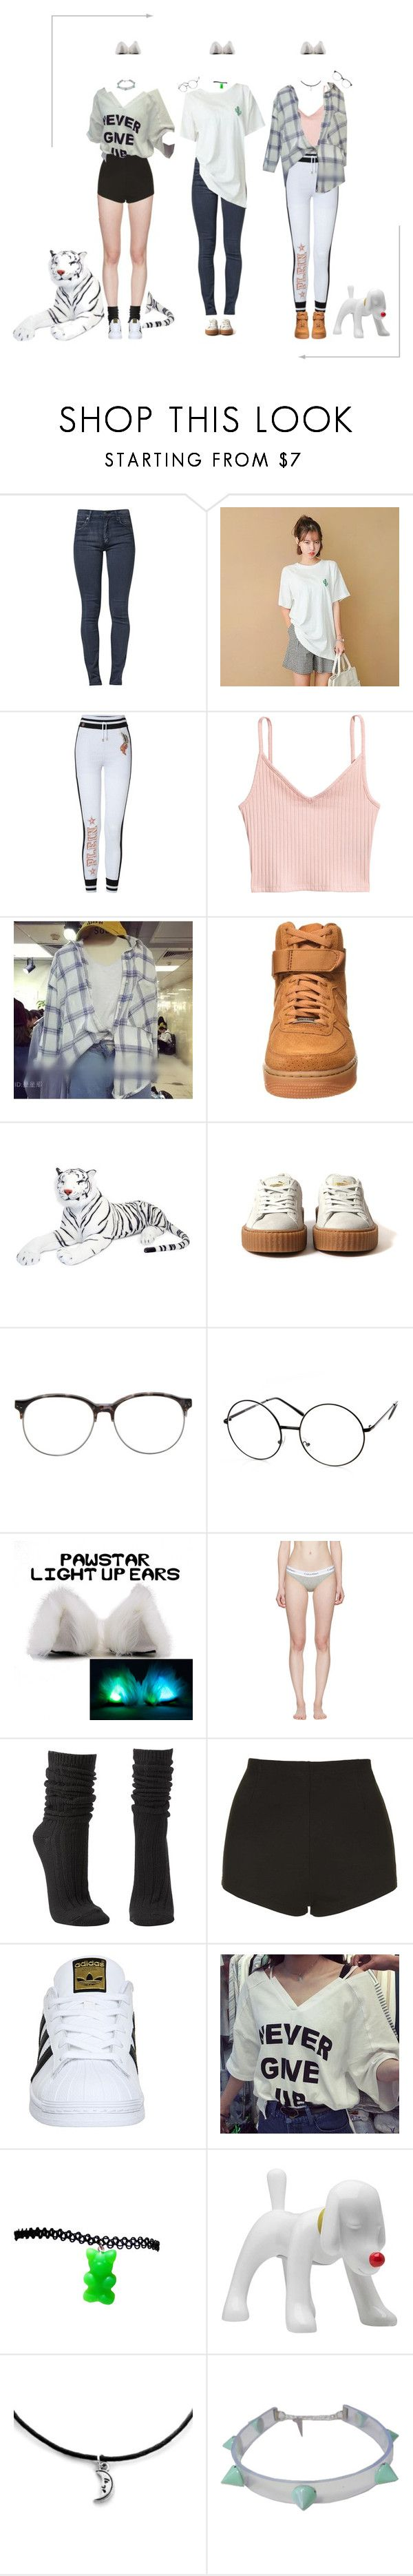 """""""[ Special Dance Practice ] Purrfectas """" Get Up """""""" by purrfectas ❤ liked on Polyvore featuring Cheap Monday, NIKE, Matthew Williamson, Calvin Klein Underwear, Charlotte Russe, Topshop, adidas and purroneyear"""